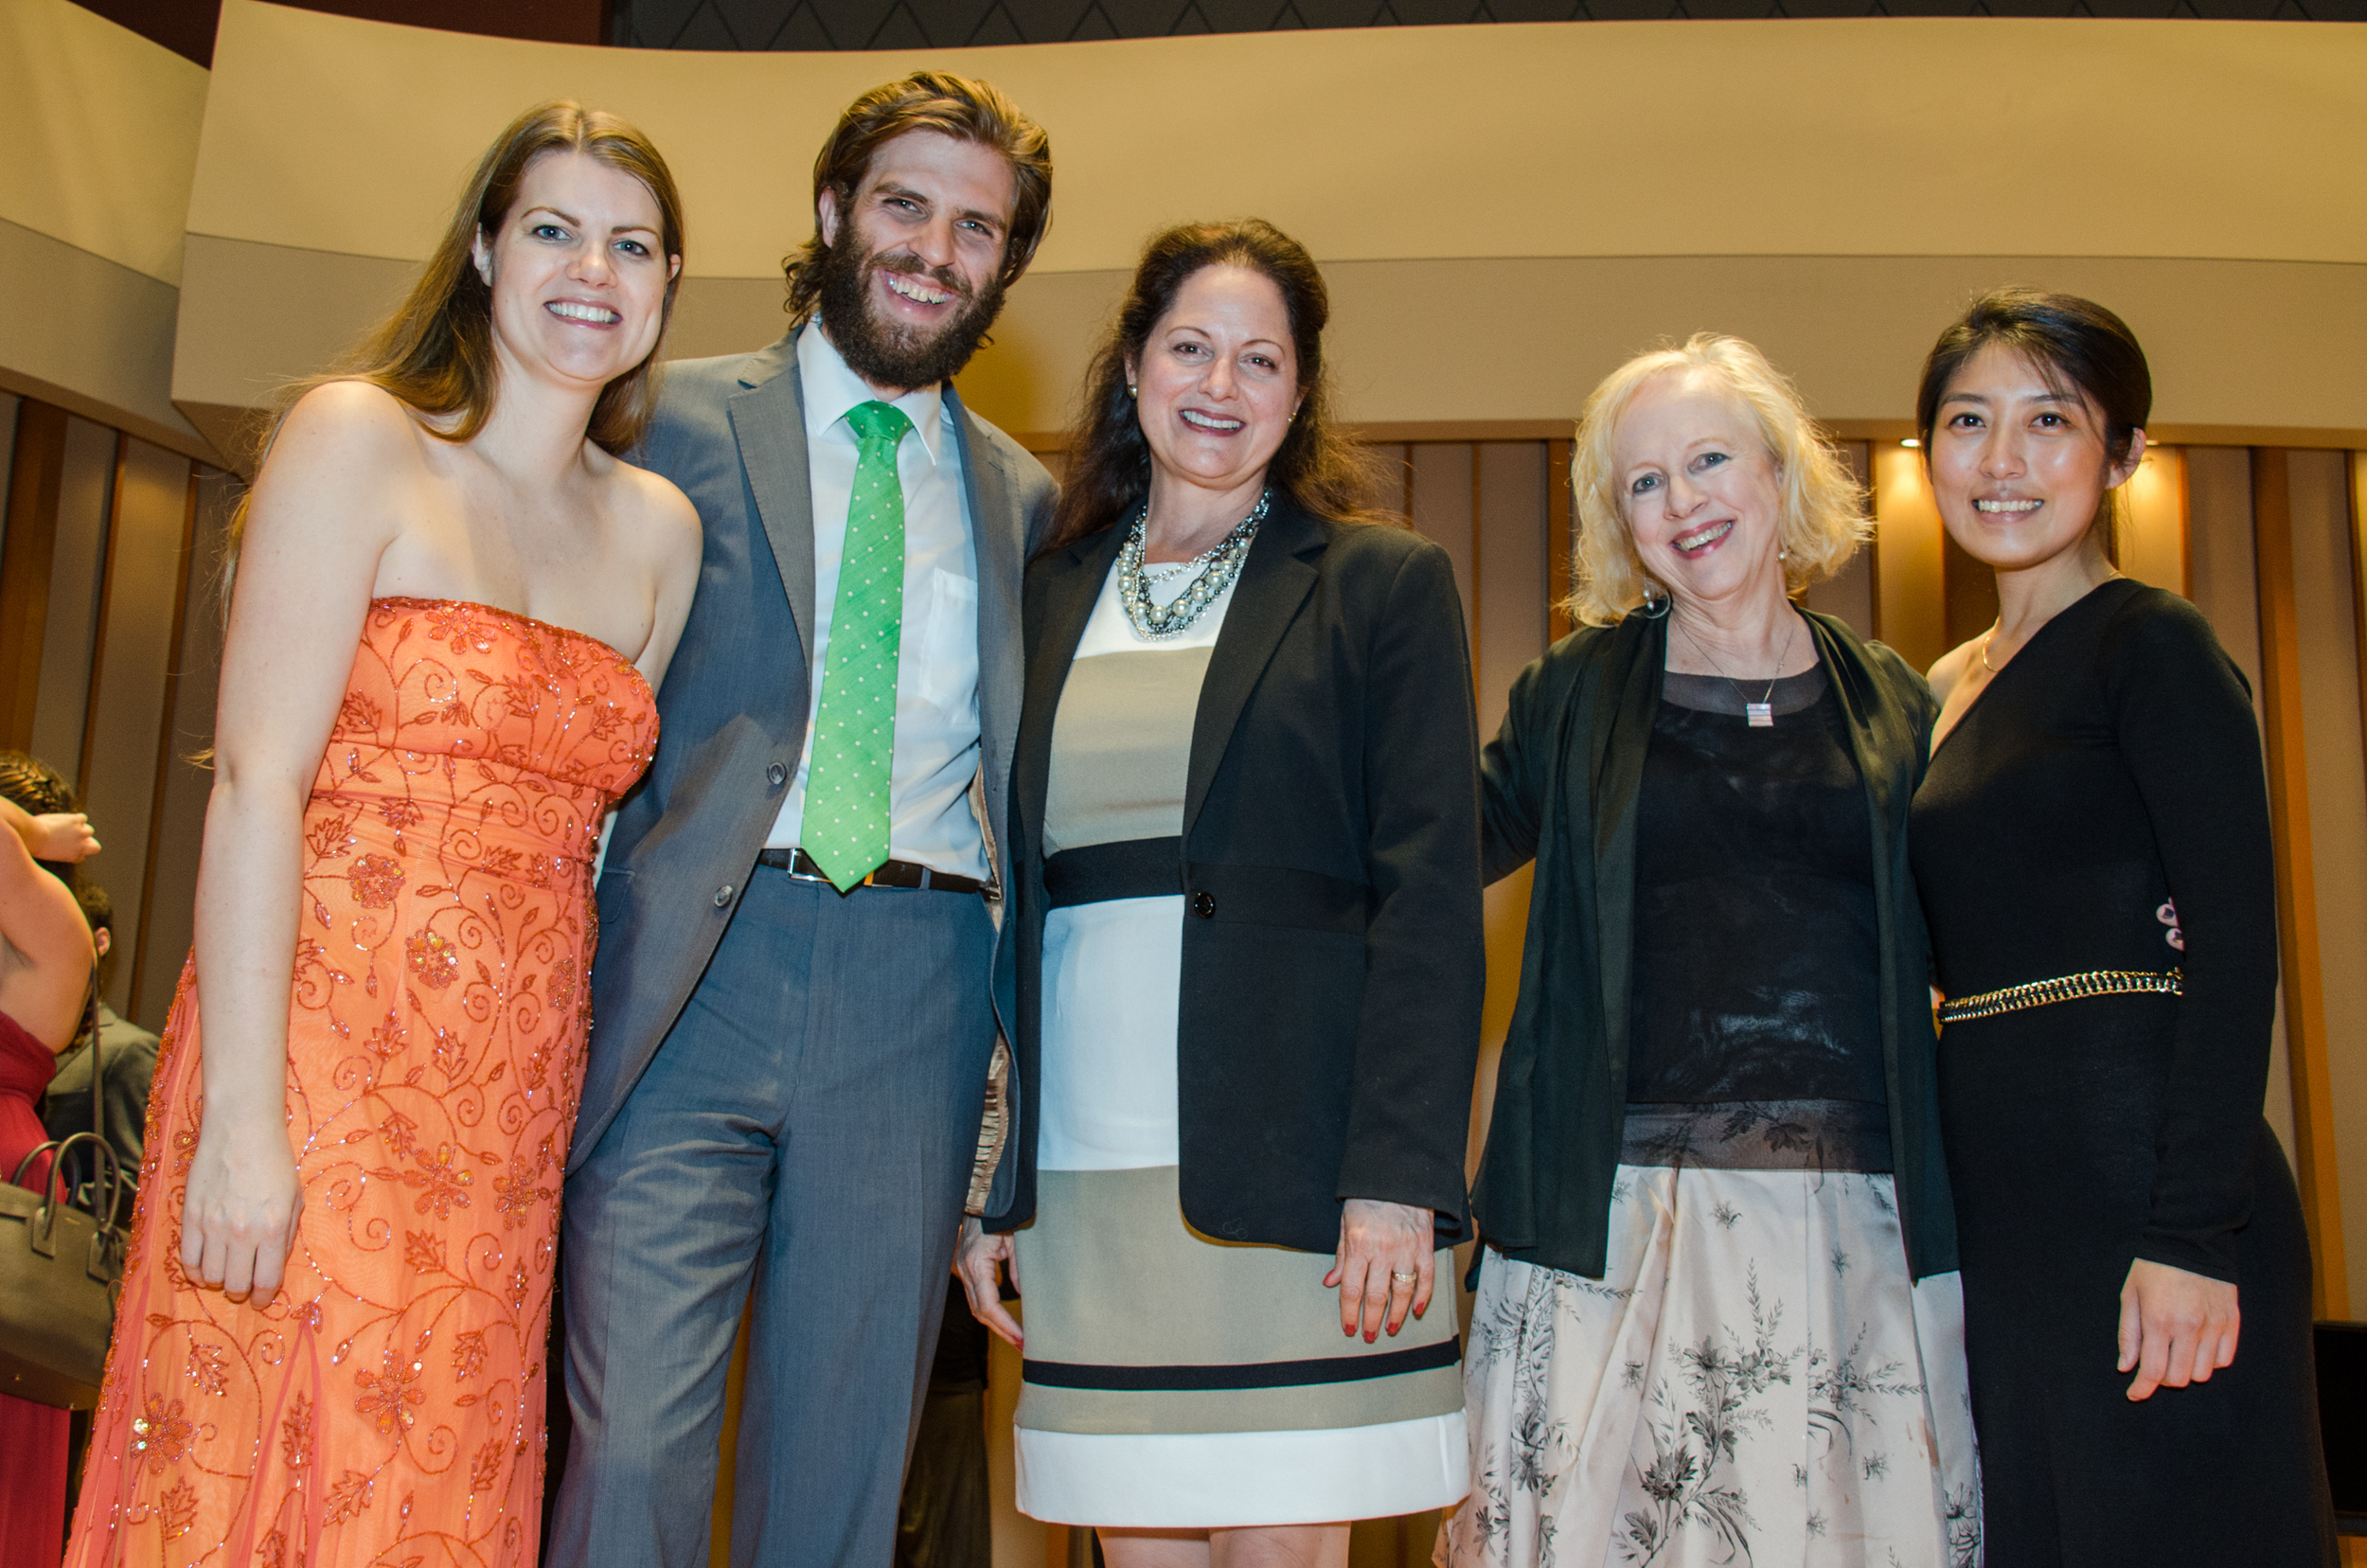 "From Left to Right: Stern Fellows soprano Melanie Henley Heyn & bass-baritone Jesse Malgieri, Sorel Organization Executive Director Judy Cope, Composer Anne LeBaron, and Stern Fellow pianist Gloria Kim after their performance of a world premiere commission by Anne LeBaron, funded by the Sorel Organization: ""Radiant Depth Unfolded"""